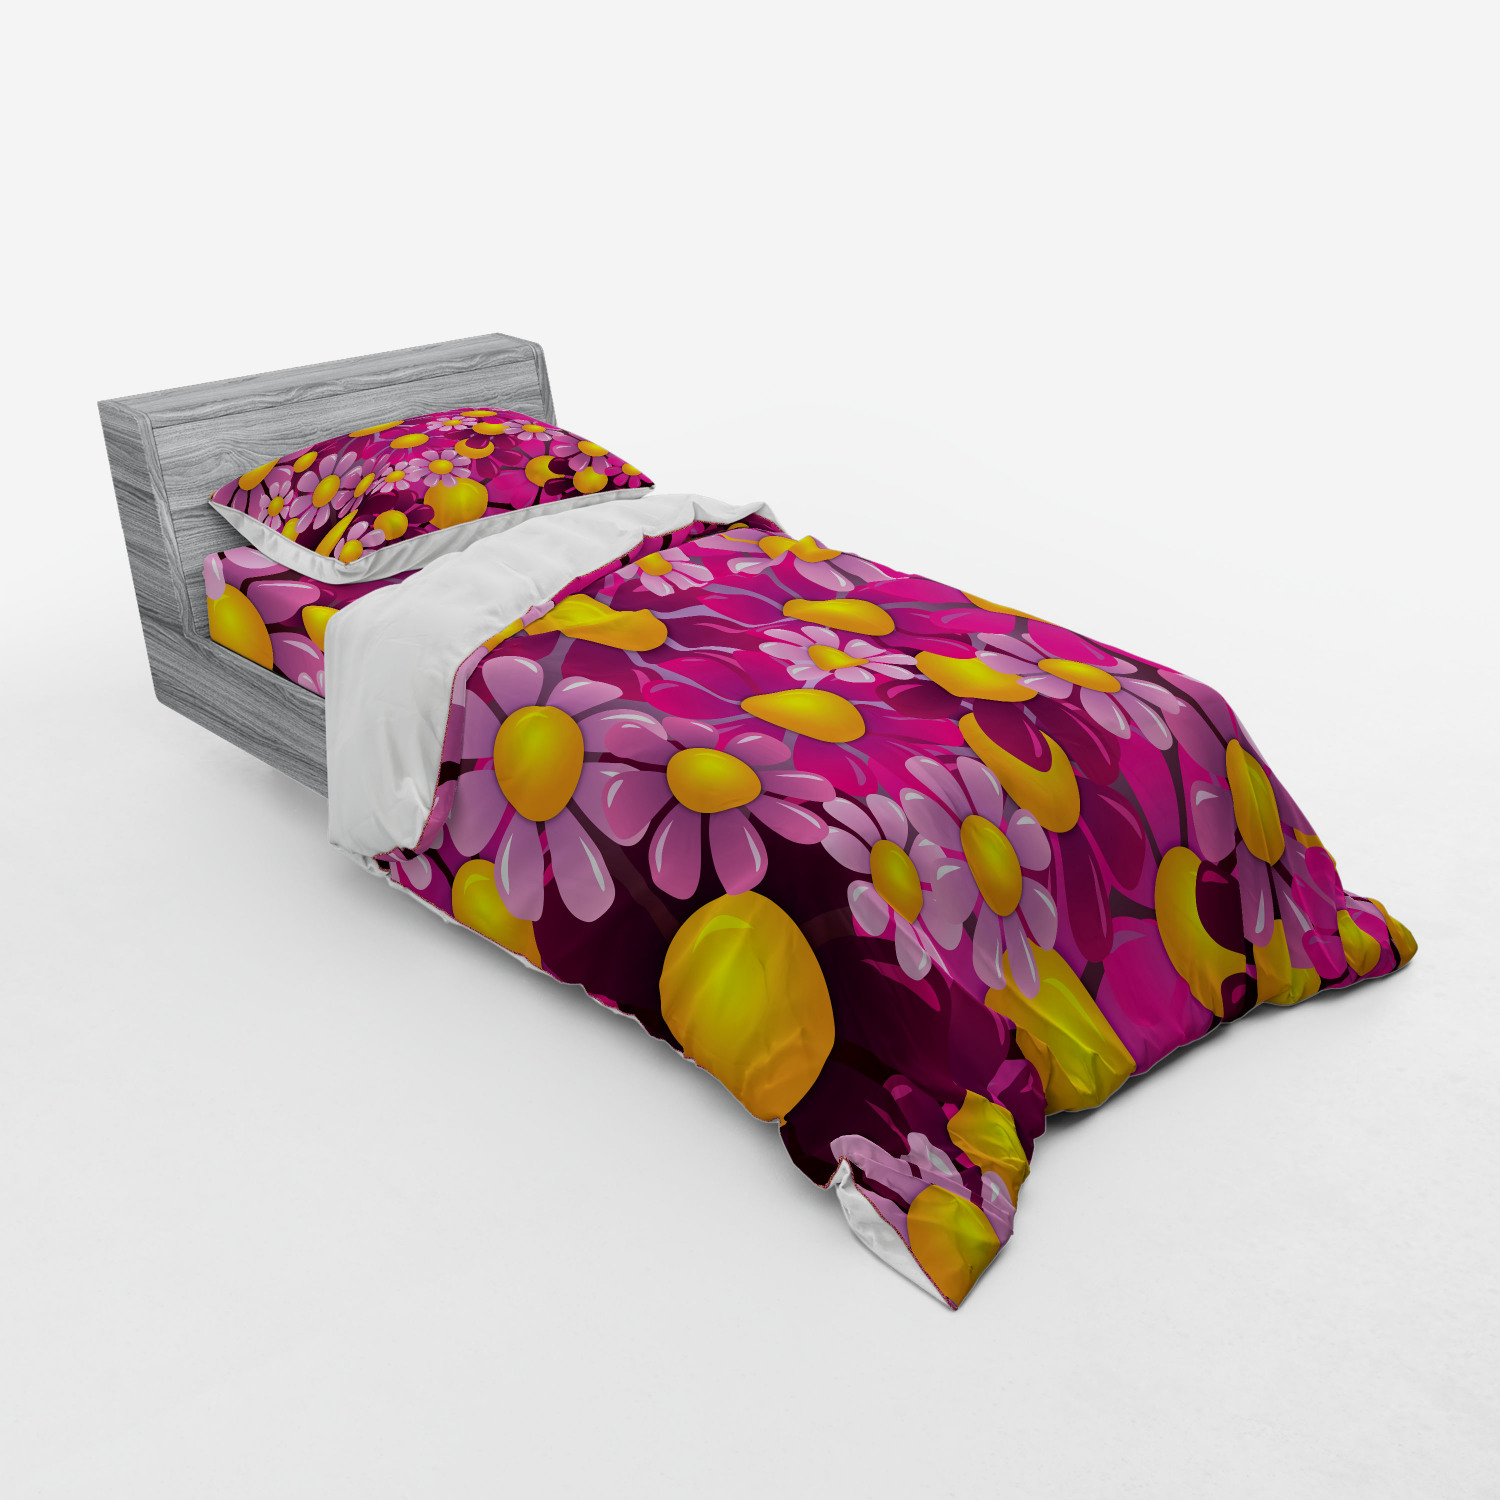 thumbnail 77 - Ambesonne Summer Bedding Set Duvet Cover Sham Fitted Sheet in 3 Sizes